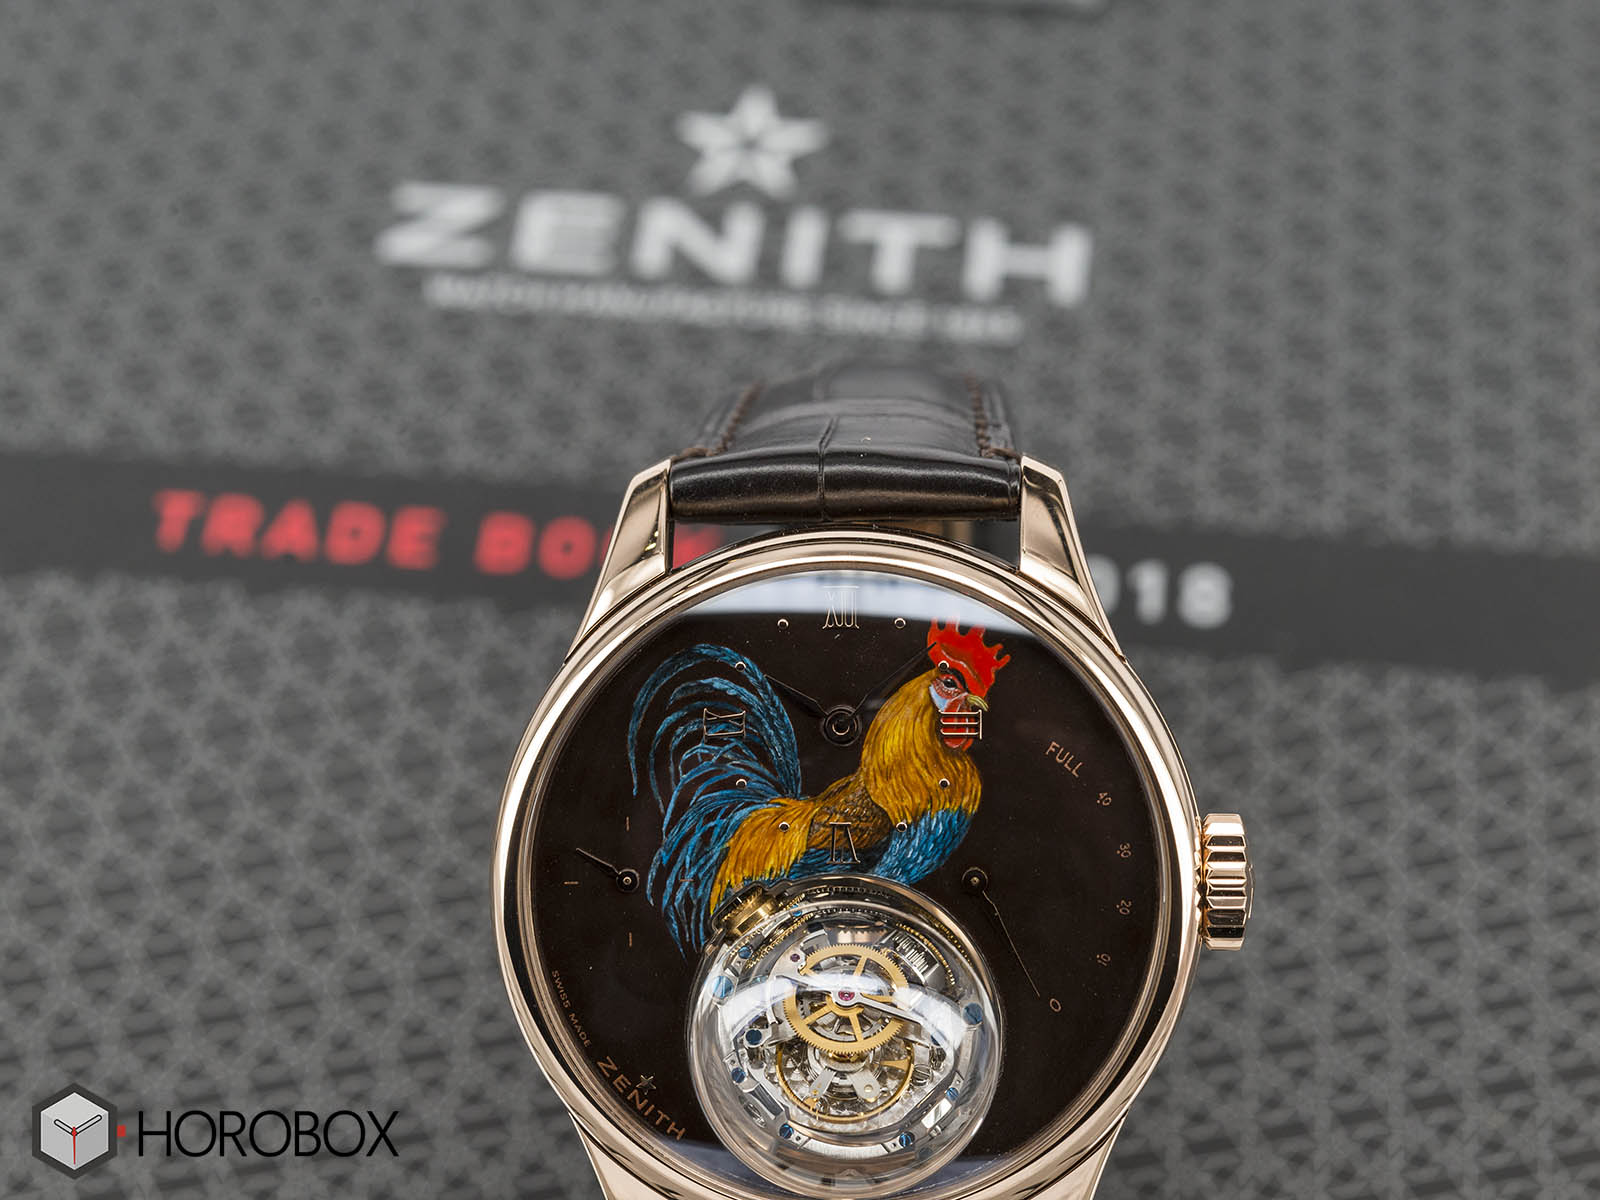 Zenith-Academy-Cristophe-Colomb-Rooster-7.jpg